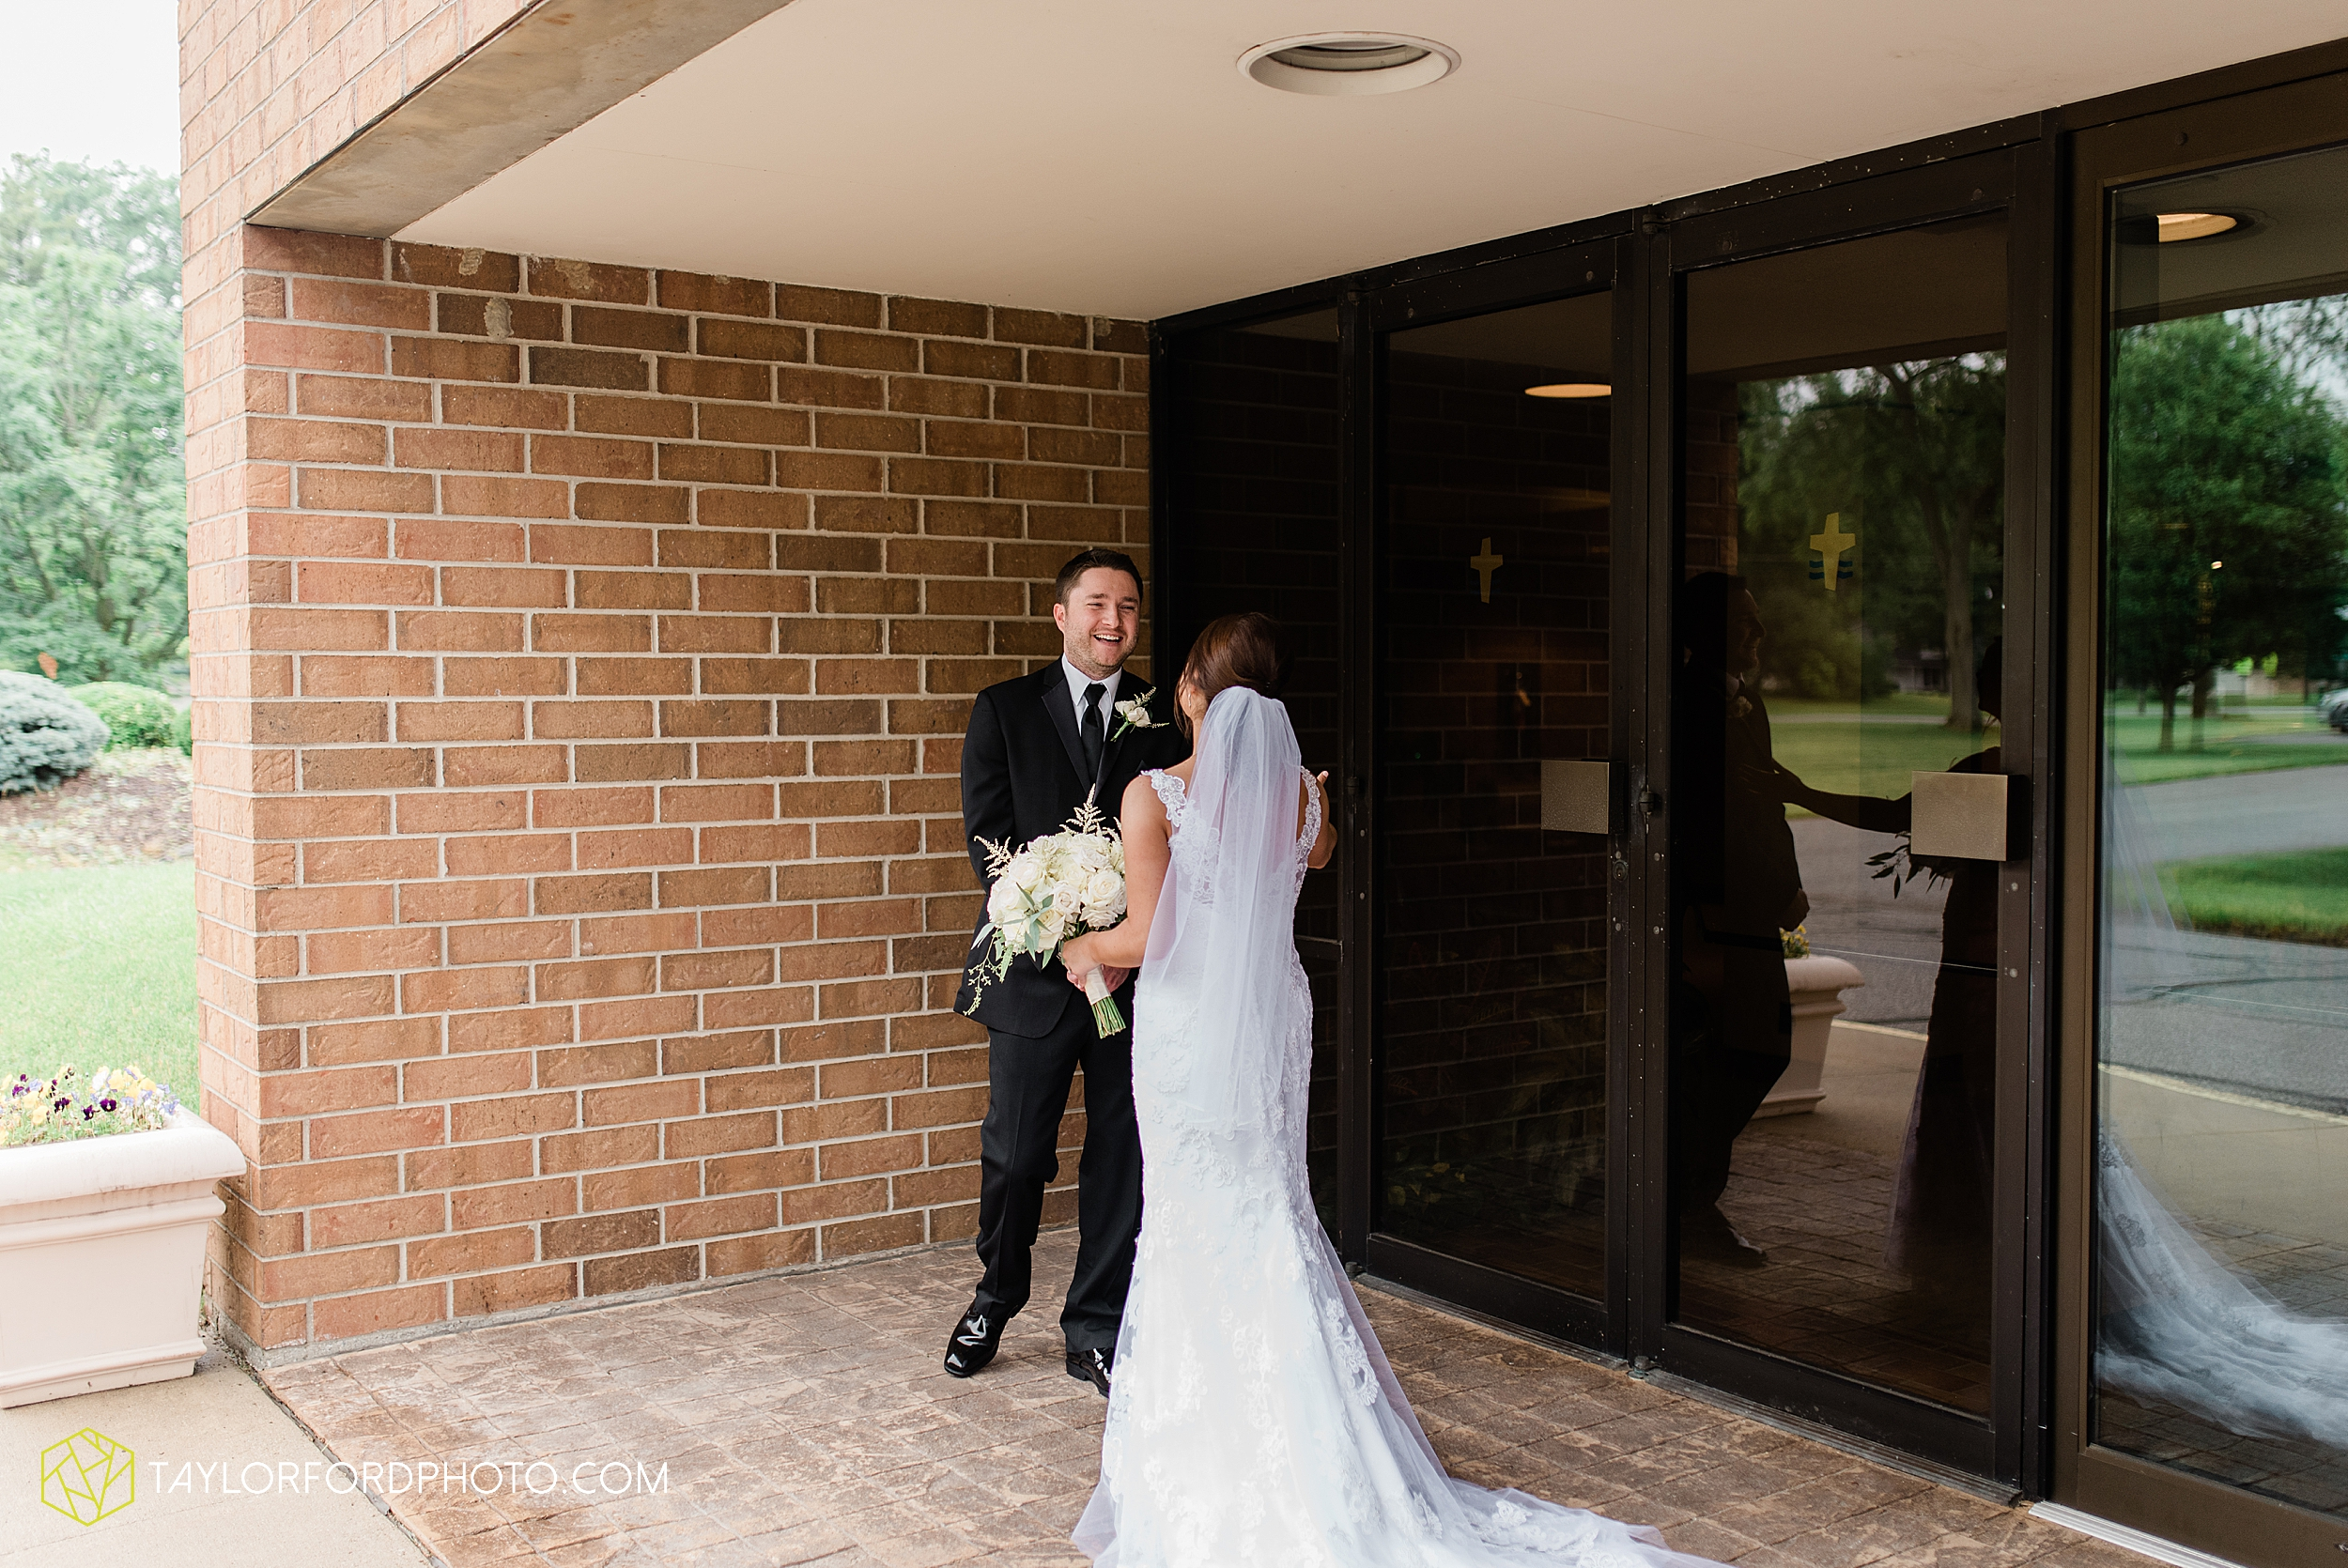 sullivan-st-francis-university-performing-arts-center-usf-saint-charles-borromeo-catholic-church-downtown-fort-wayne-indiana-wedding-photography-taylor-ford-hirschy-photographer_3218.jpg